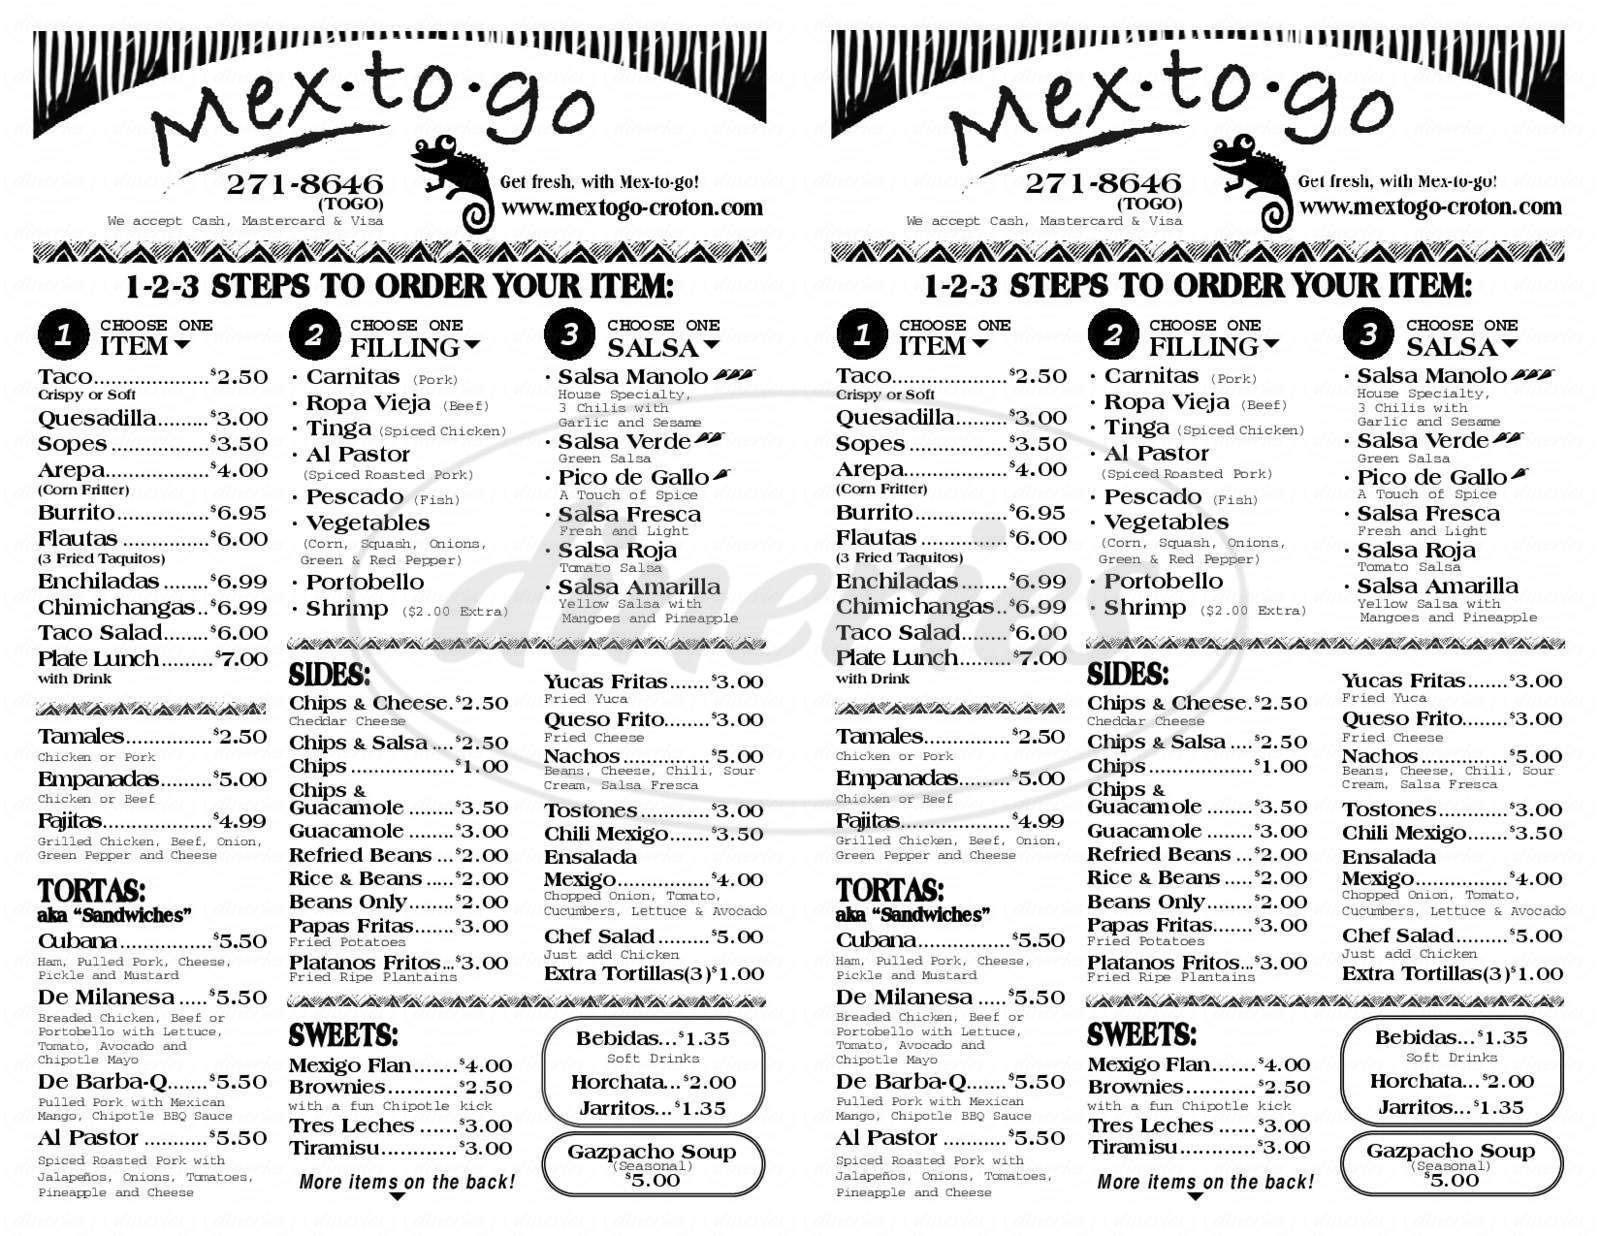 menu for Mex-to-go